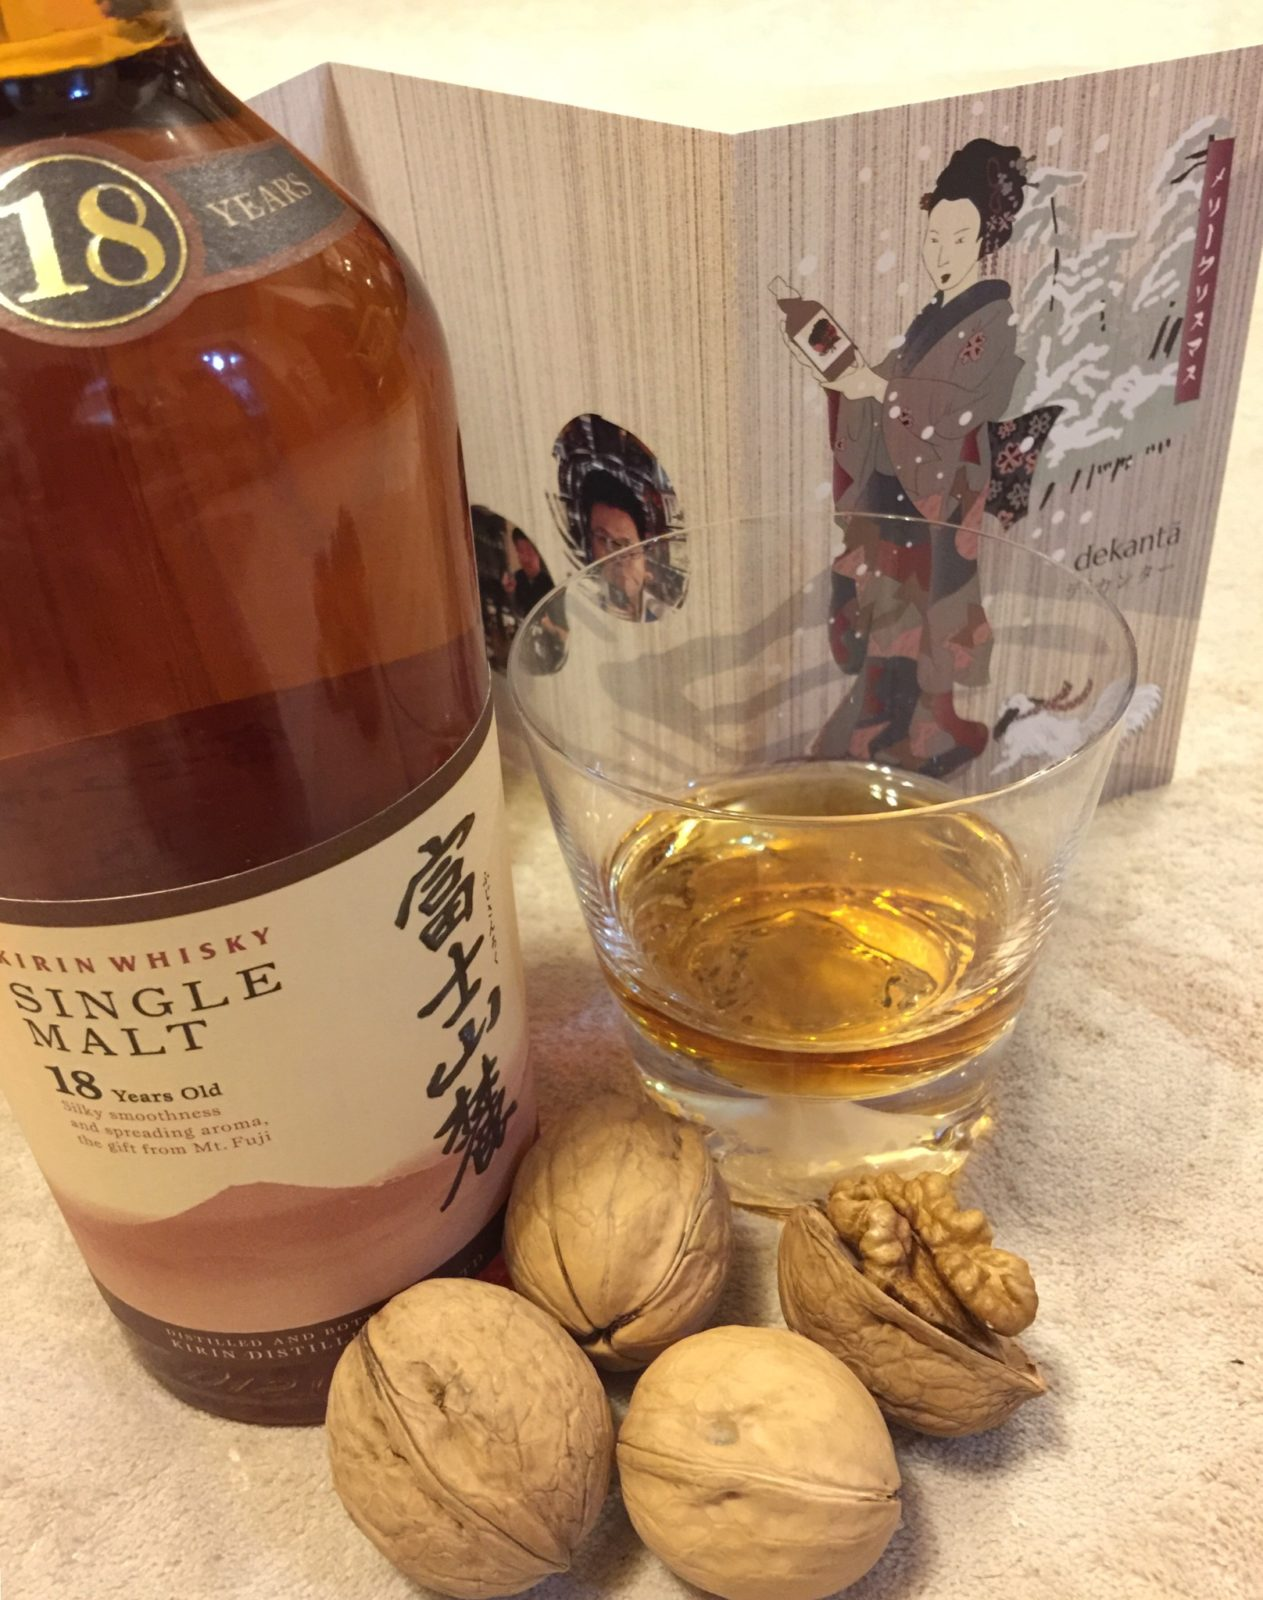 Photo from Nichols in Hong Kong of Japanese Whisky Bottle from Kirin